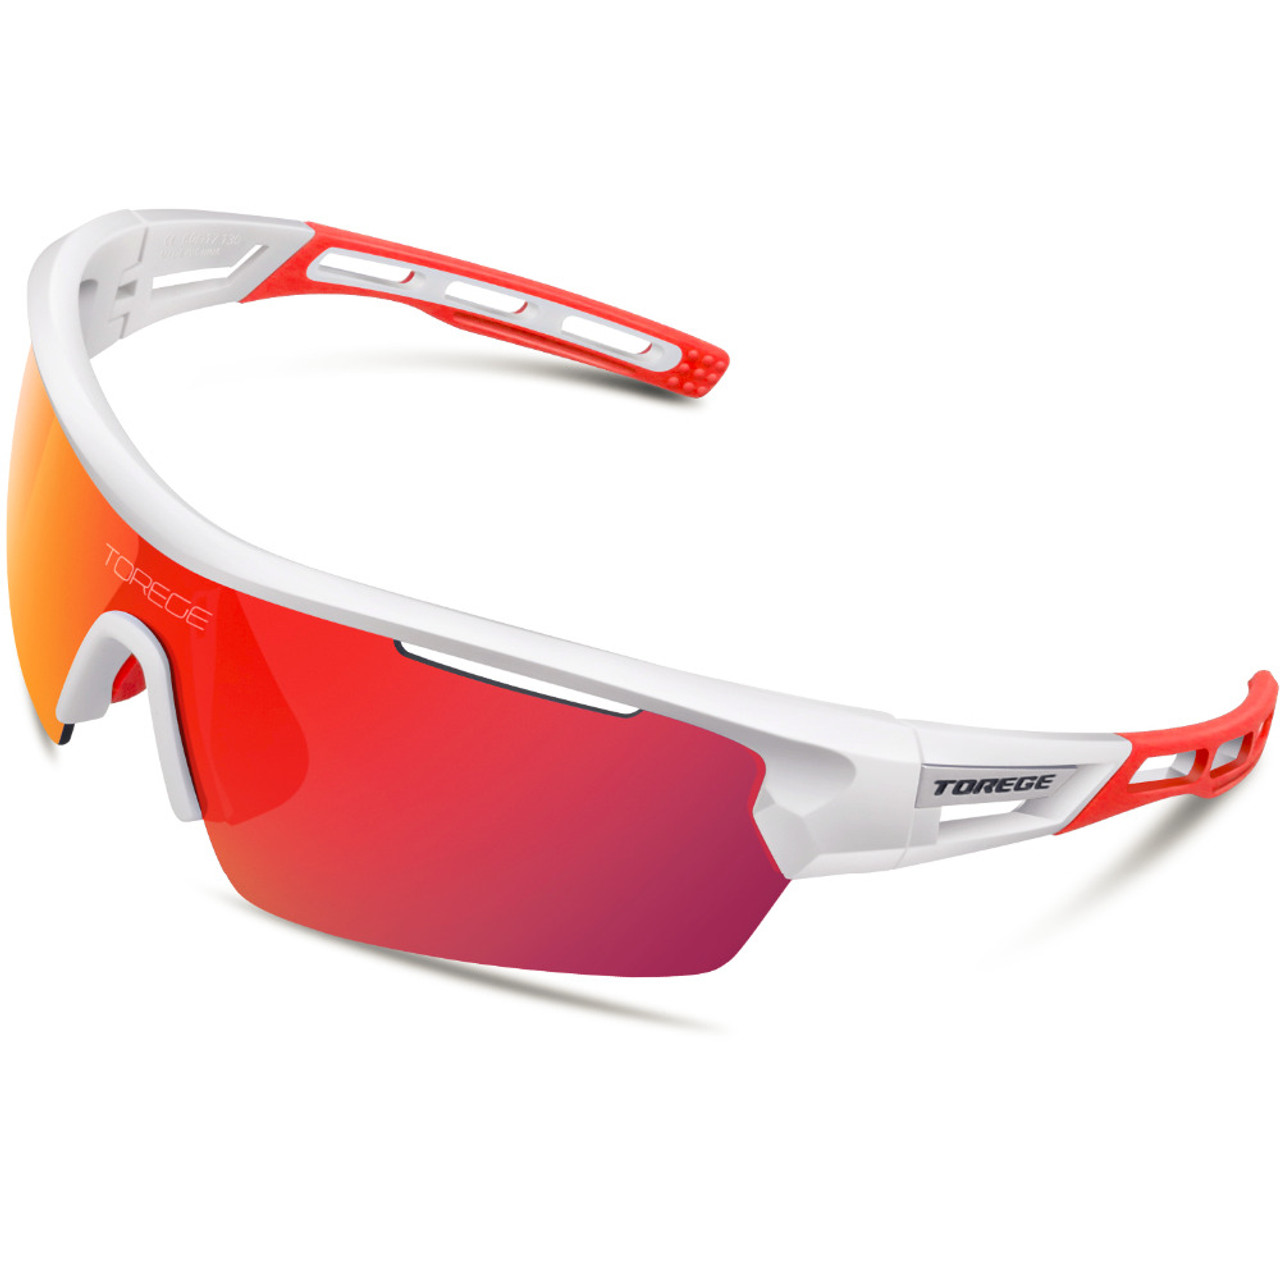 Polarized Sports Sunglasses With 4 Interchangeable Lenes for Men ...